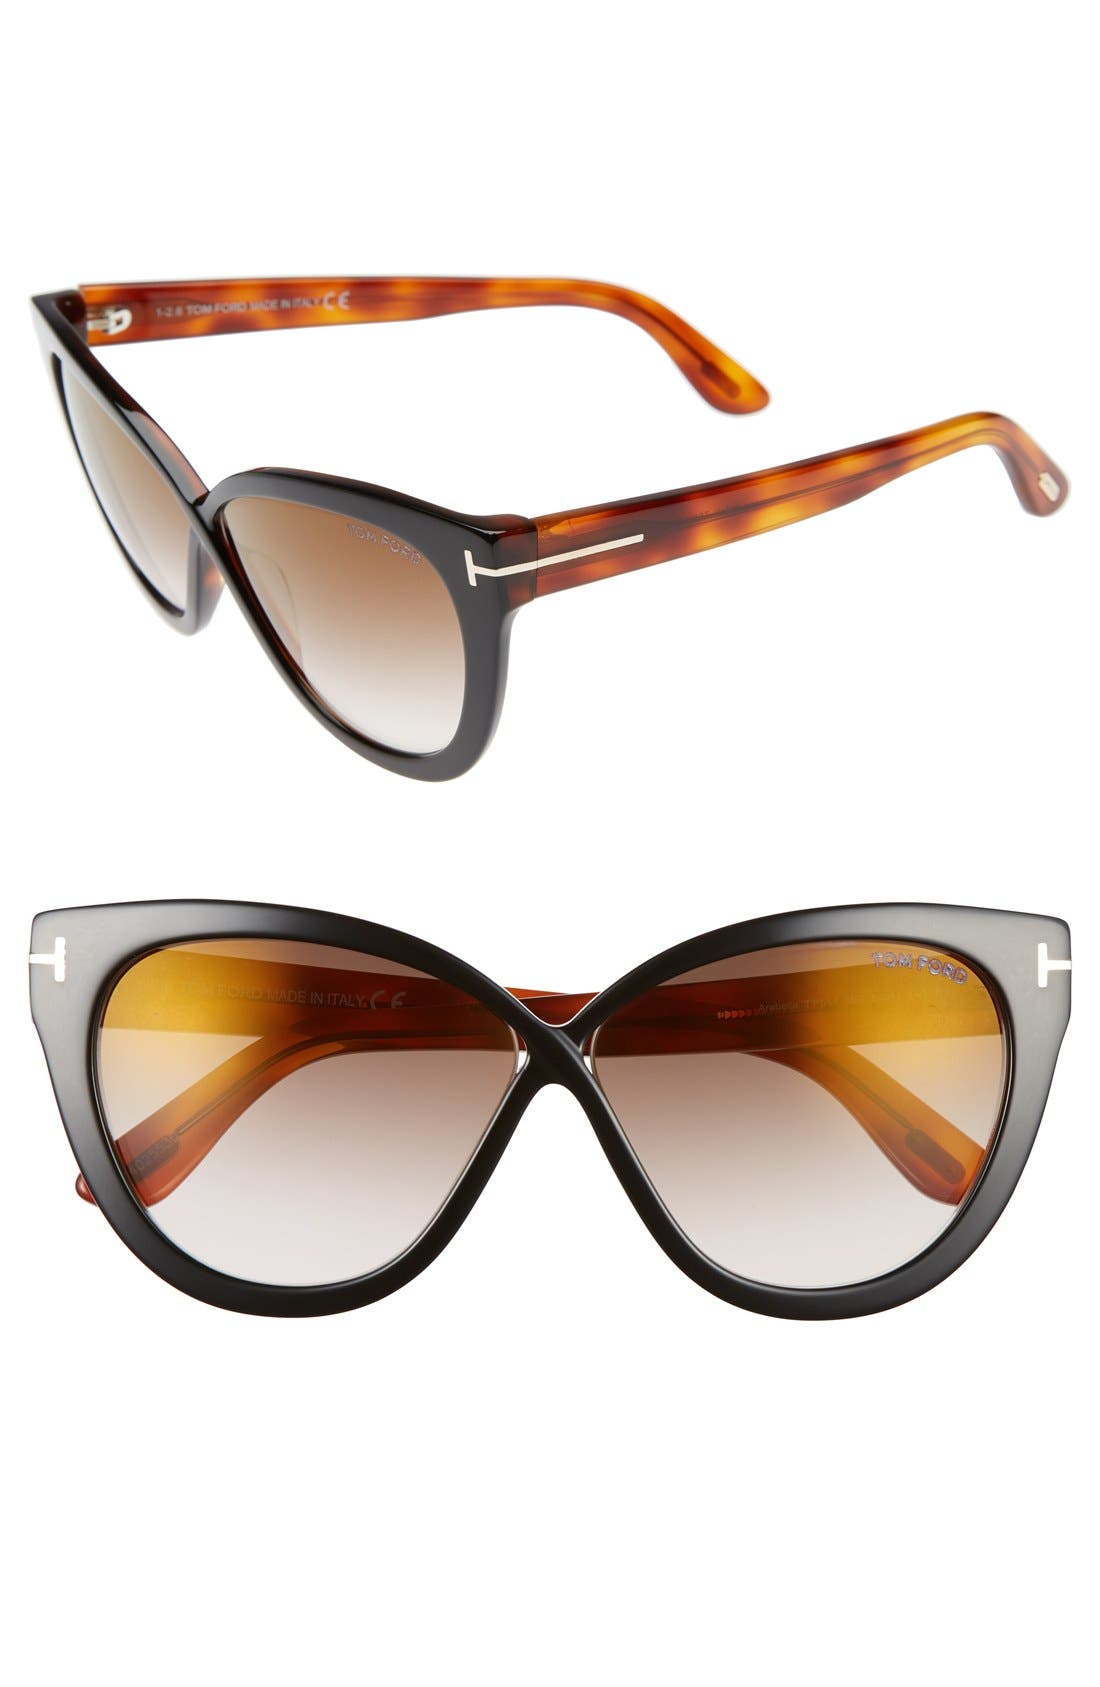 Arabella 59mm Cat Eye Sunglasses,                             Main thumbnail 1, color,                             Black/ Havana/ Brown Flash